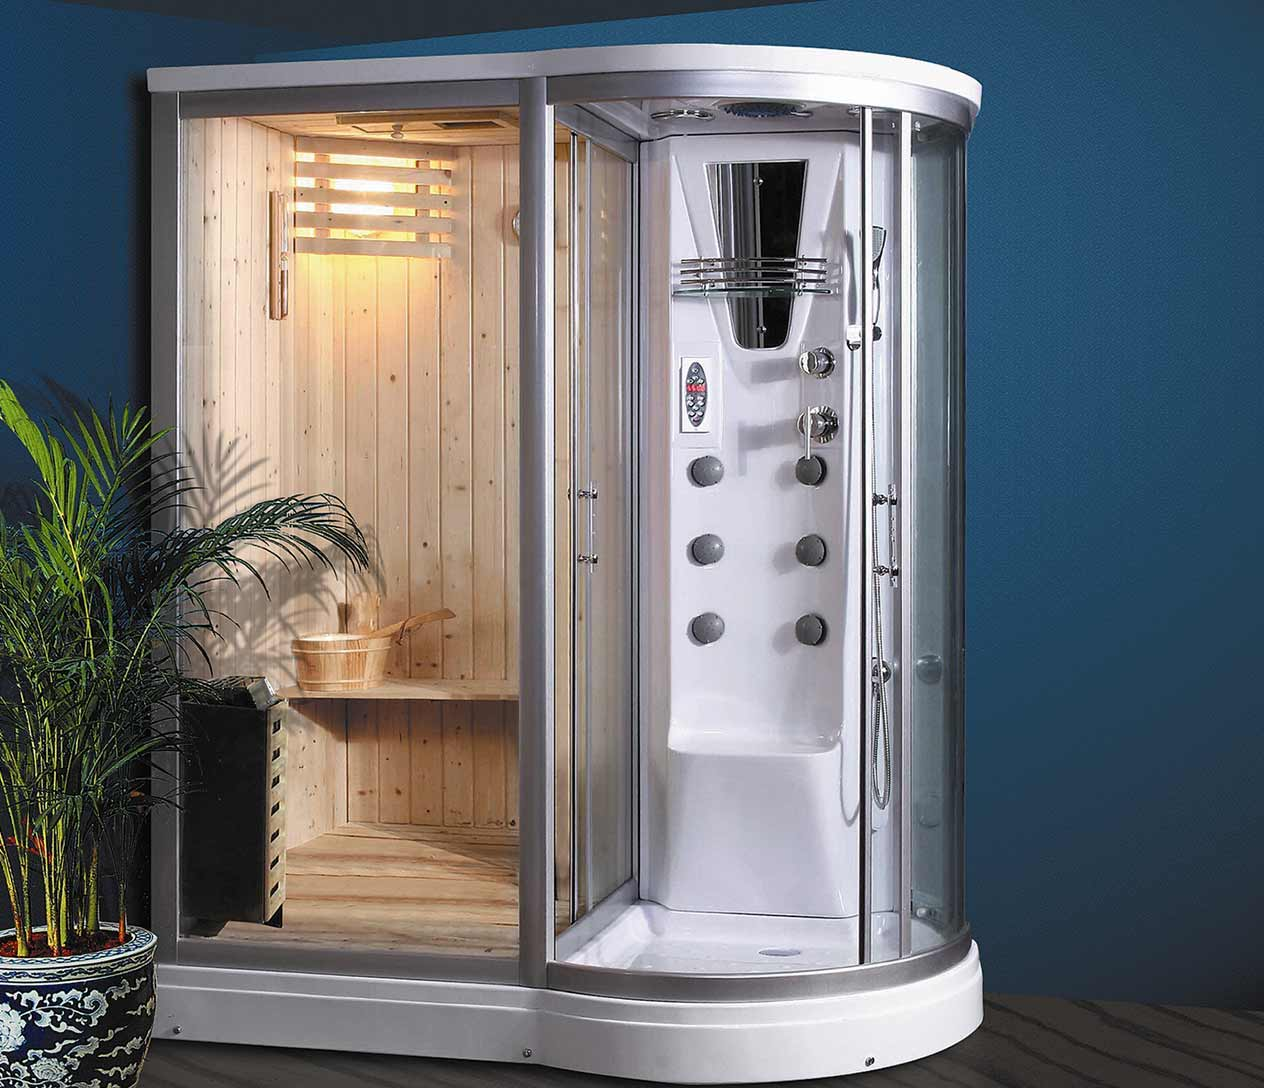 Ax 8128 Steam Shower L Luxury Spas Inc